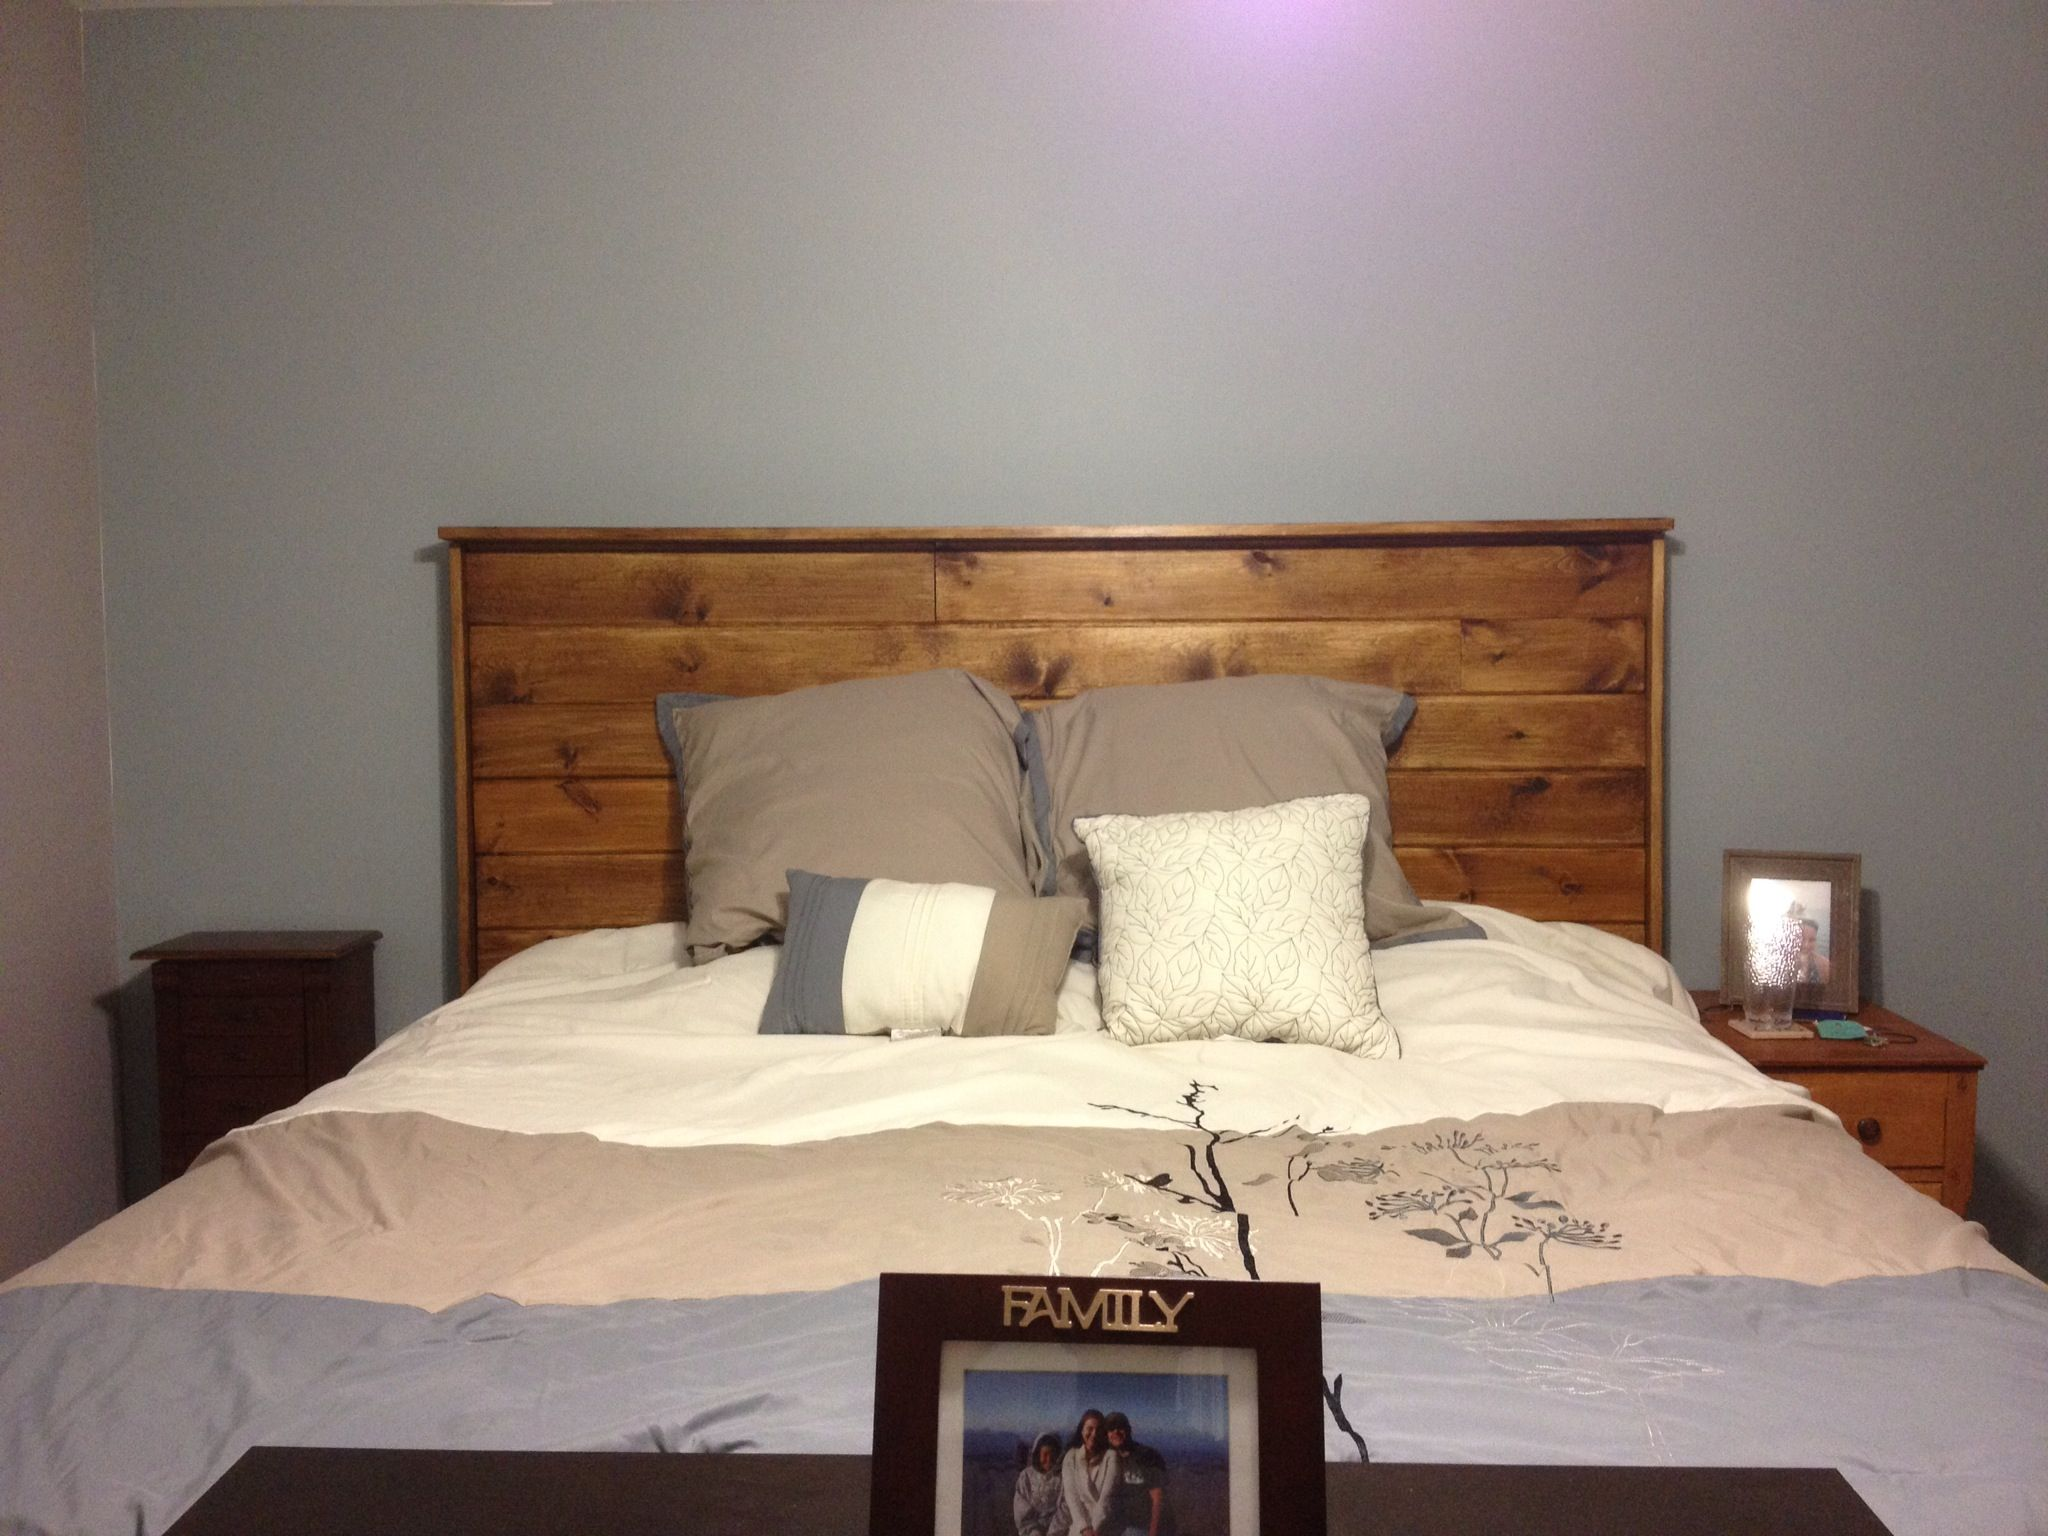 Homemade Headboard For King Size Bed King Size Bed Headboard